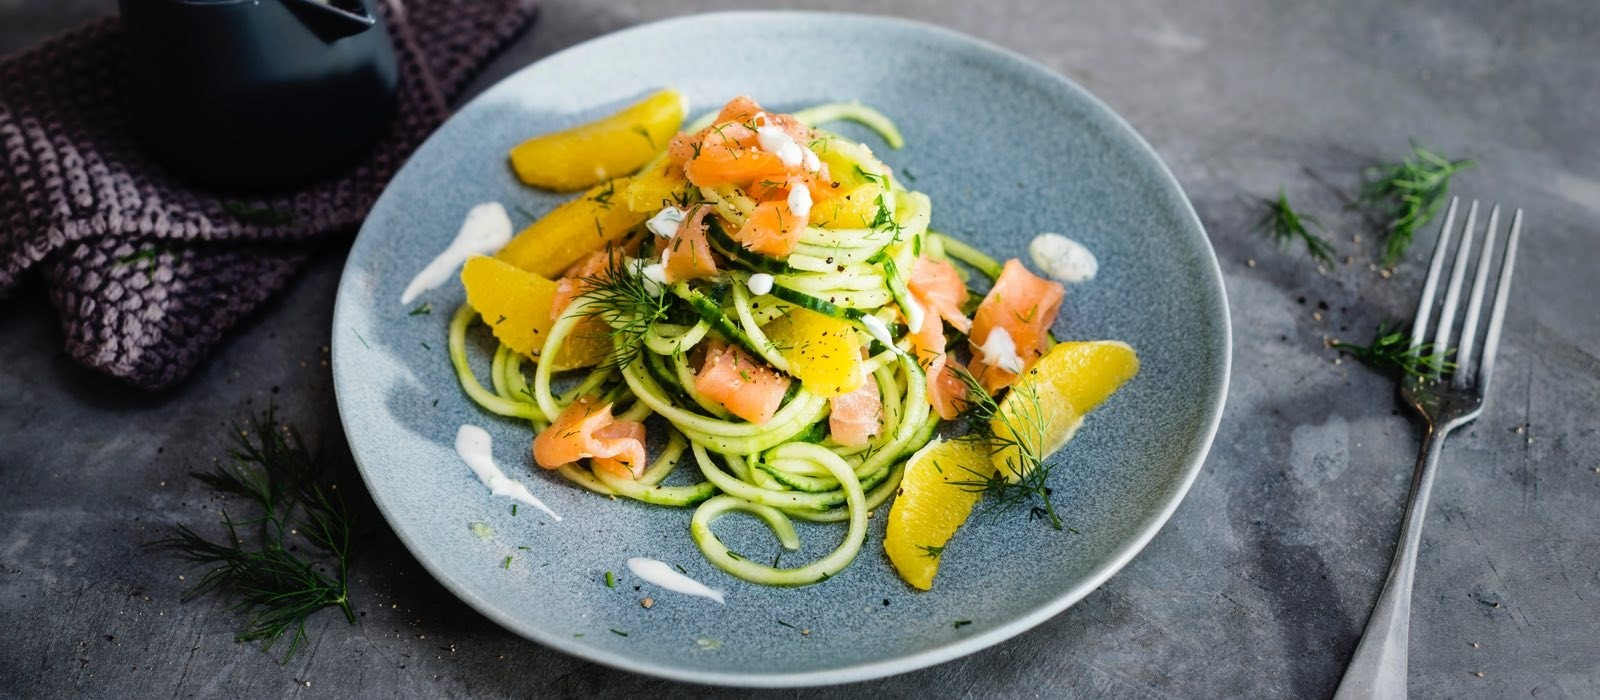 Cucumber Noodles Salad With Smoked Salmon Dill And Sour Cream